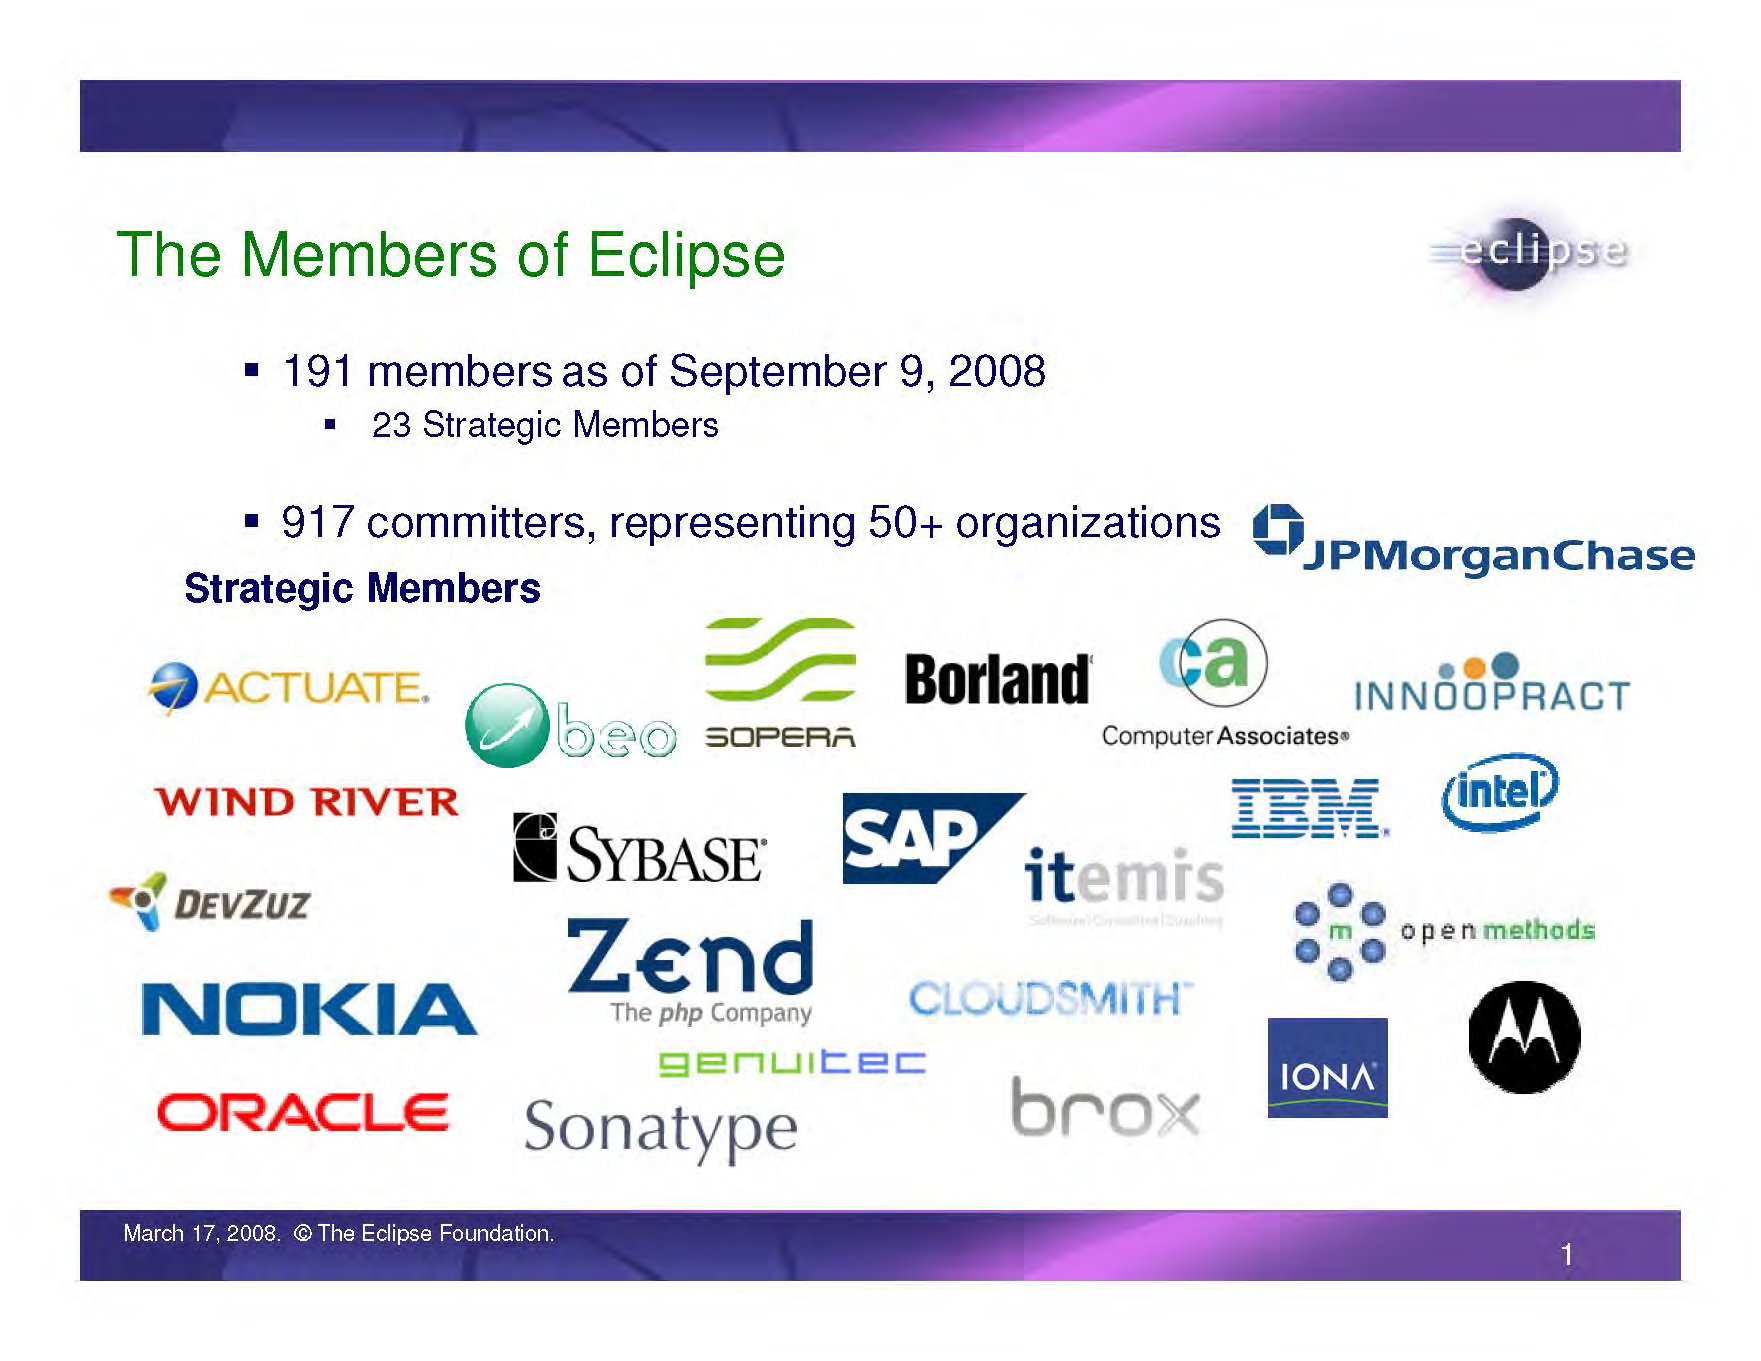 IBM Eclipse Foundation Membership logos, Page 1, as of Sep. 9, 2008 (Actuate, Beo, Borlan, Brox, Cloudsmith, Computer Associates, DevZuz, GenuiTec, IBM, Innoopract, Iona, Itemis, JPMorgan Chase, Moto